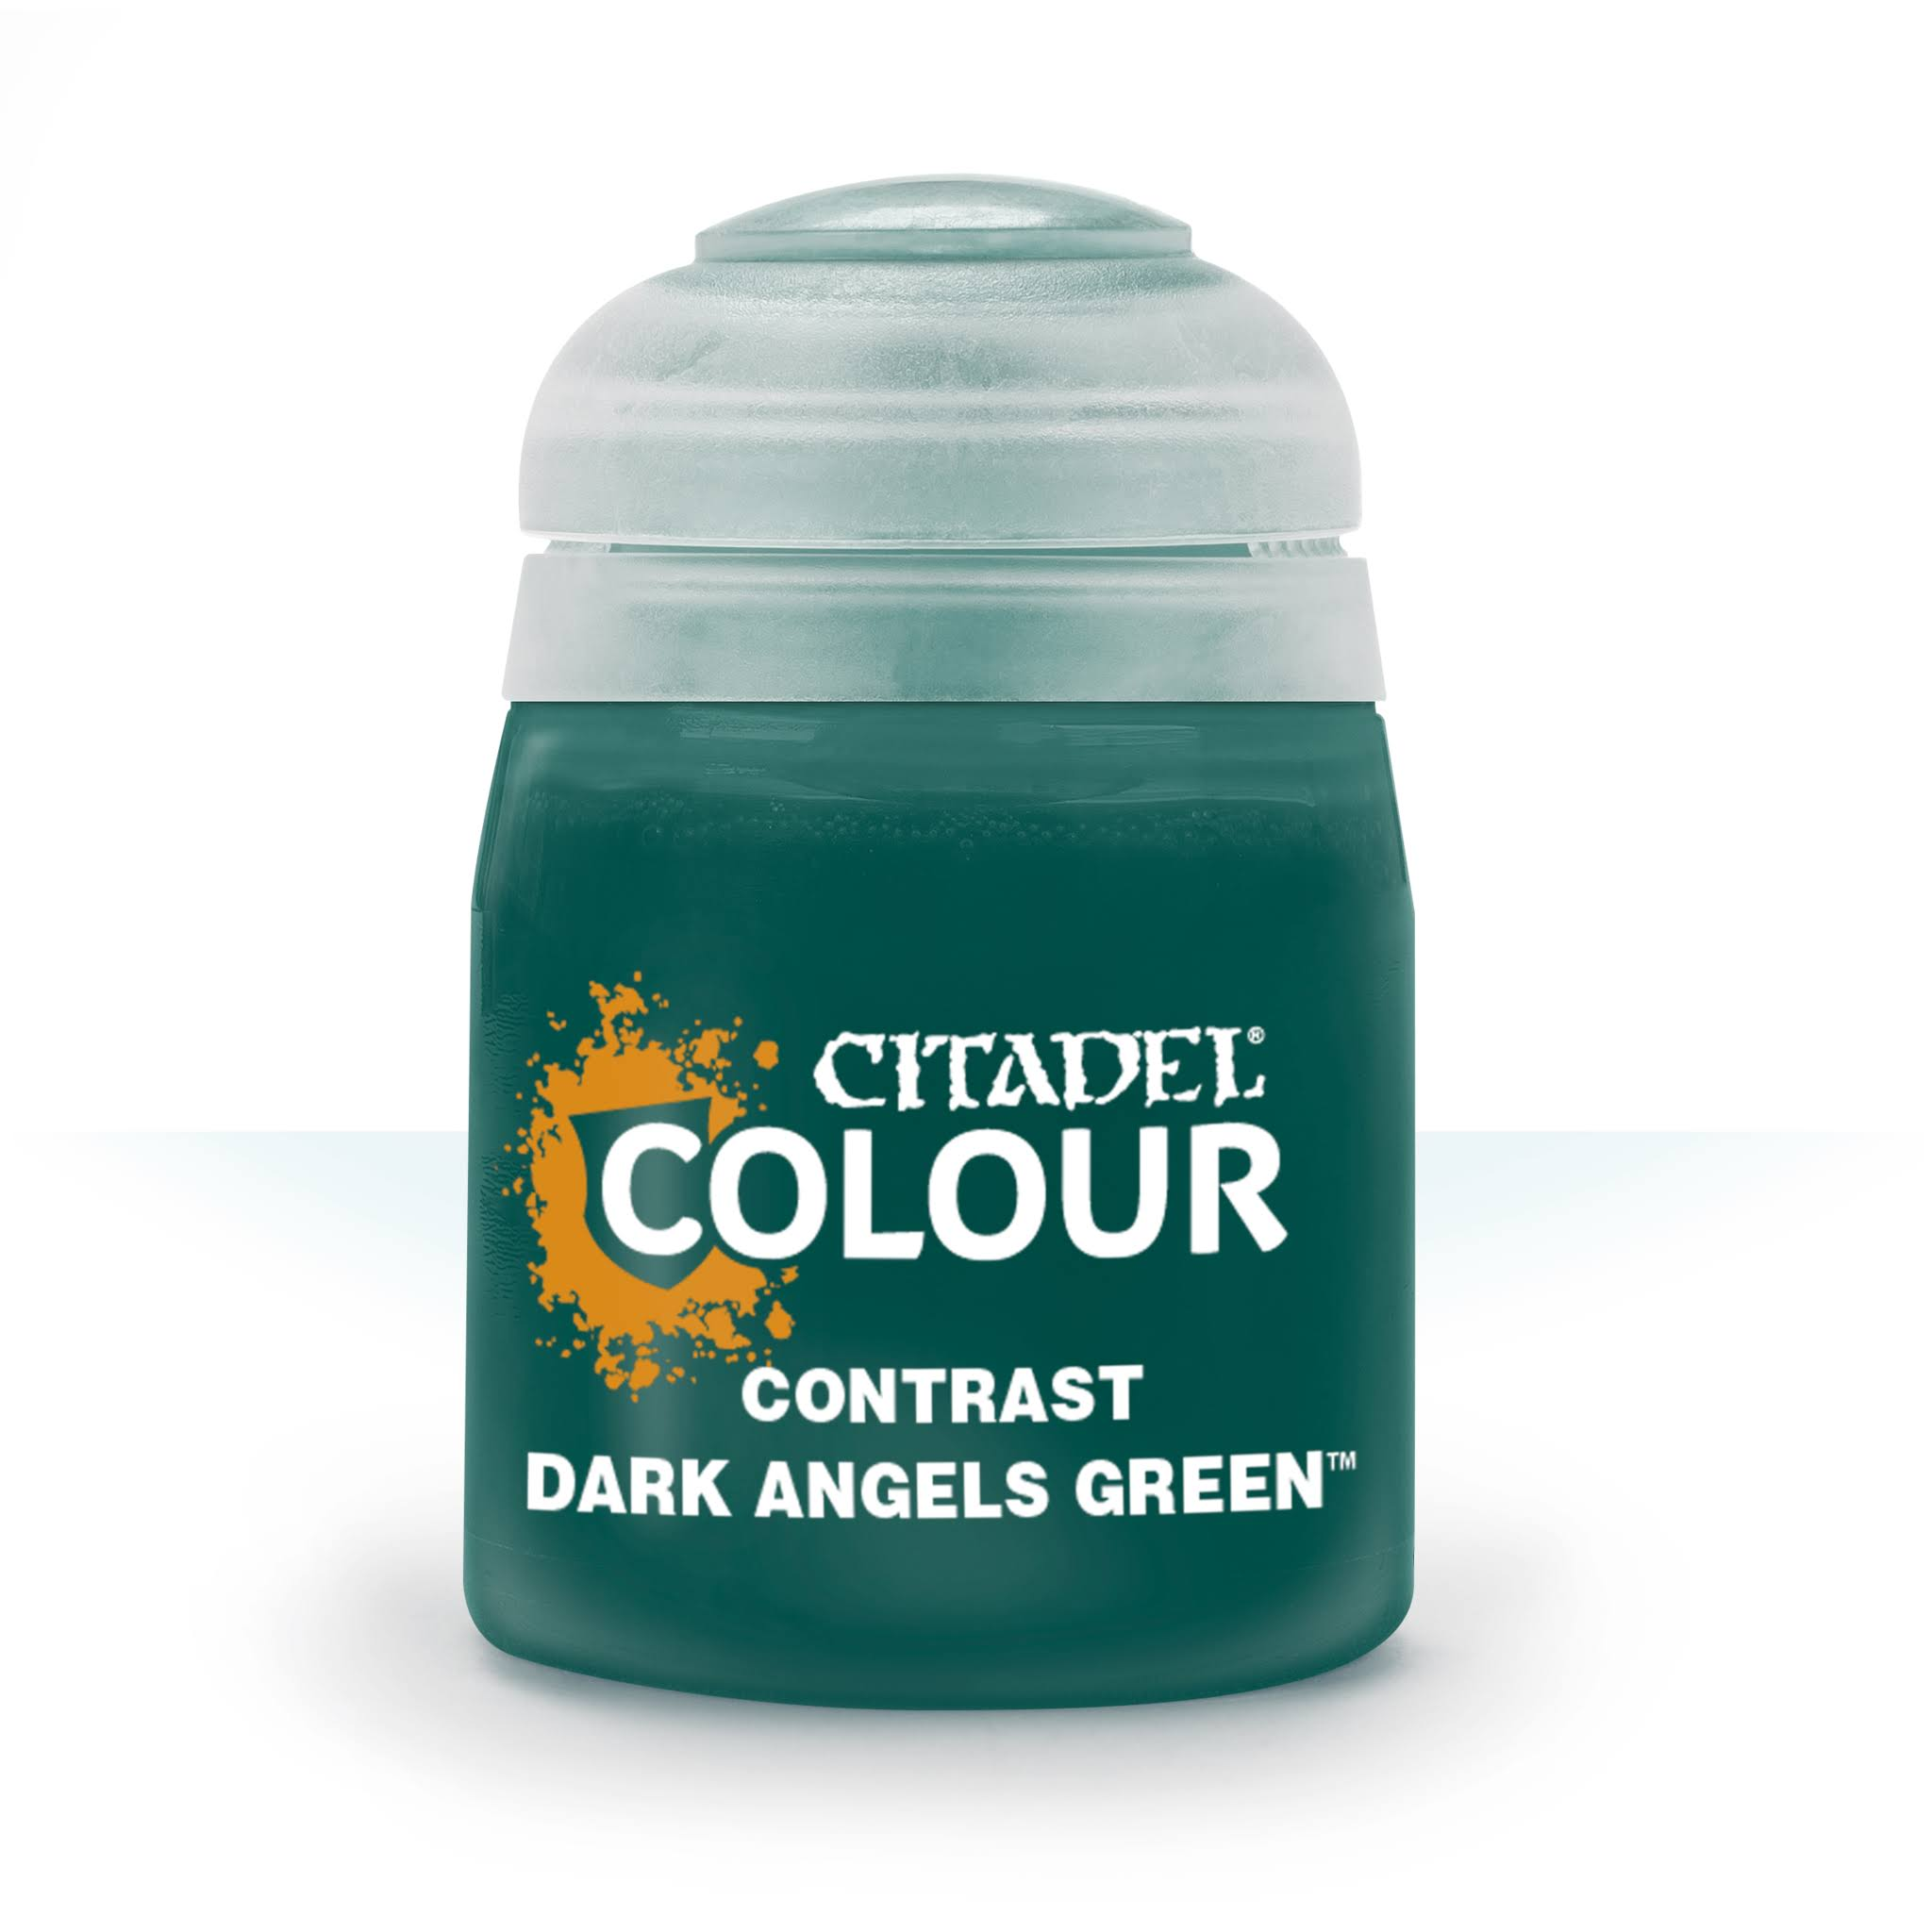 Citadel Contrast: Dark Angels Green